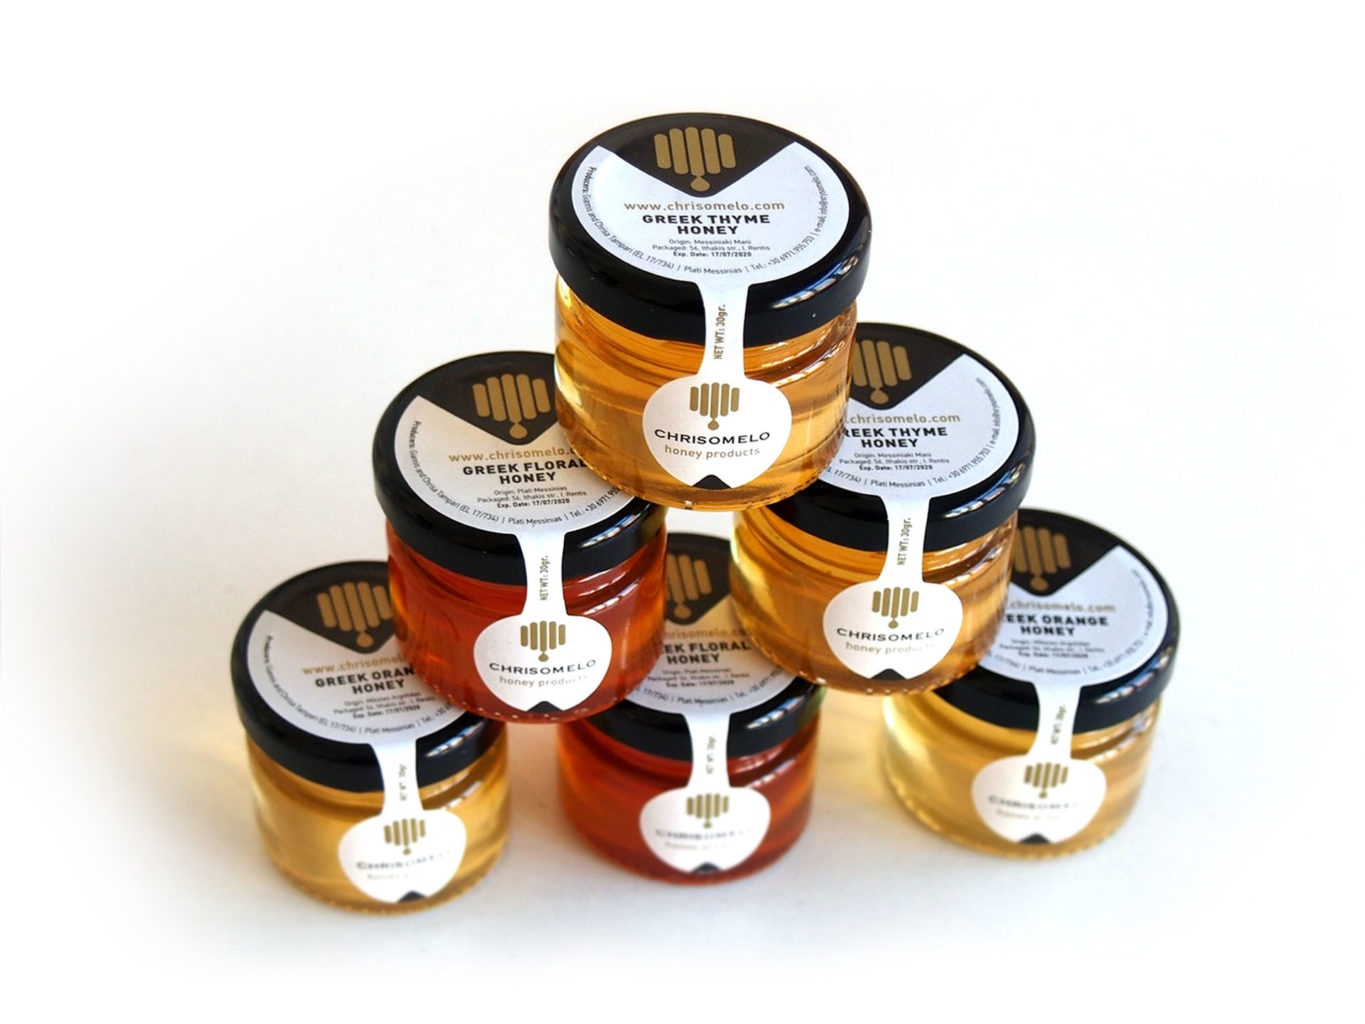 Chrisomelo honey packaging